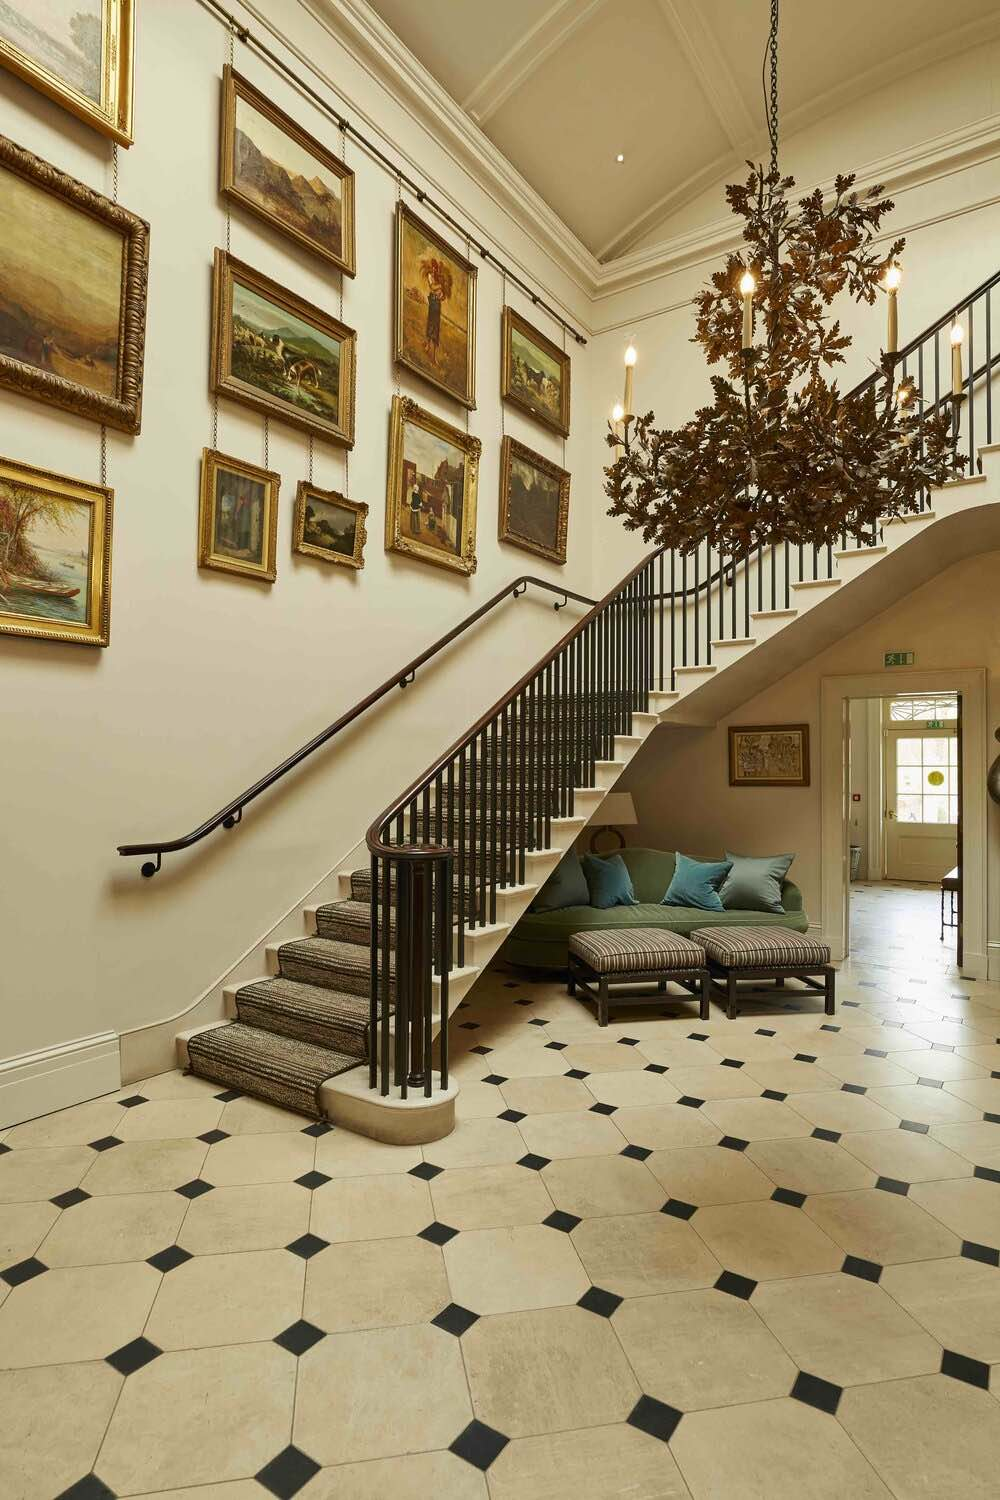 Lime Wood Hotel Staircase